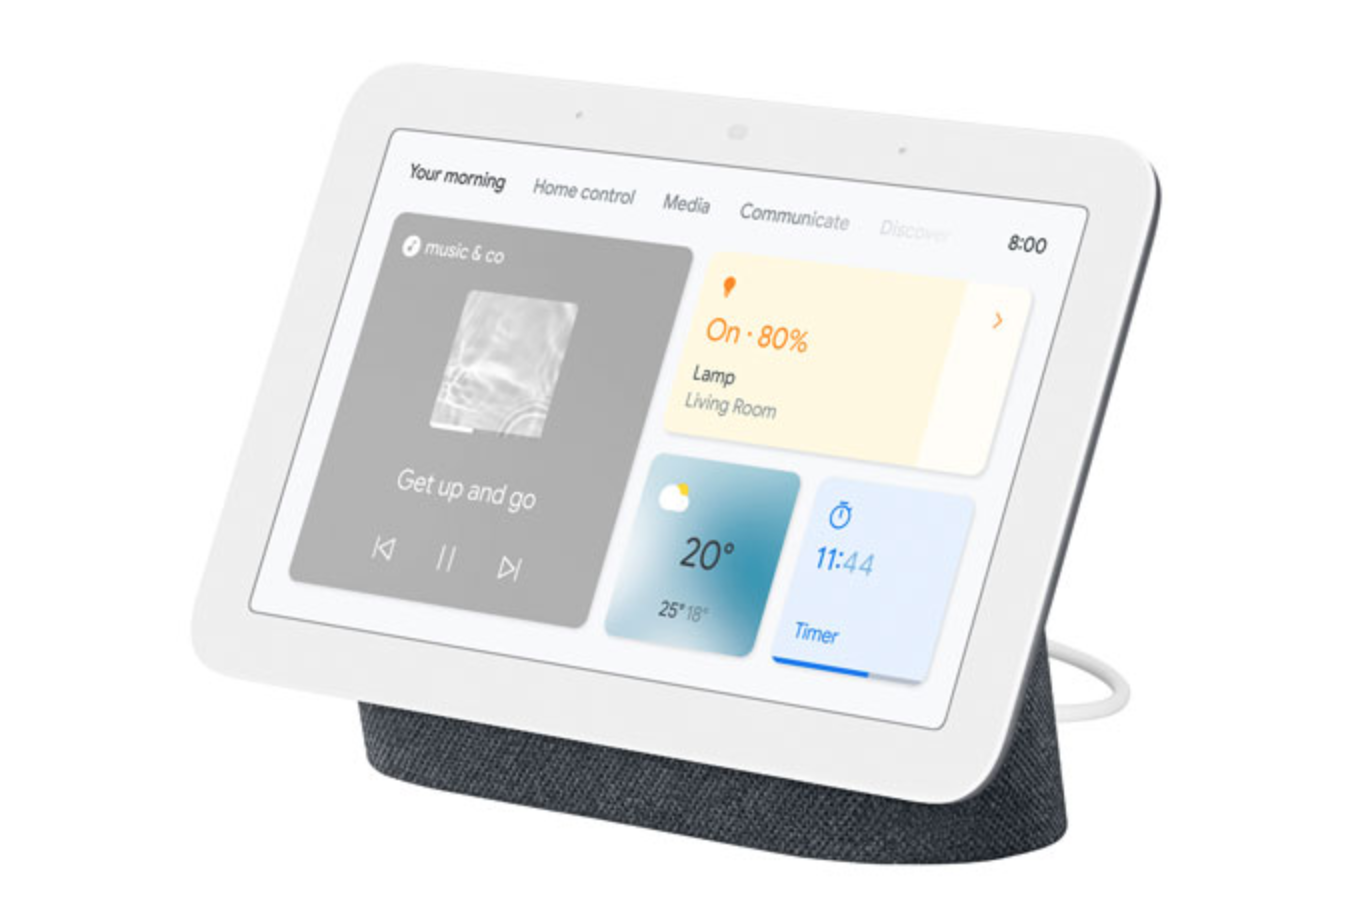 image of the Google Nest Hub 2nd Gen displaying various apps